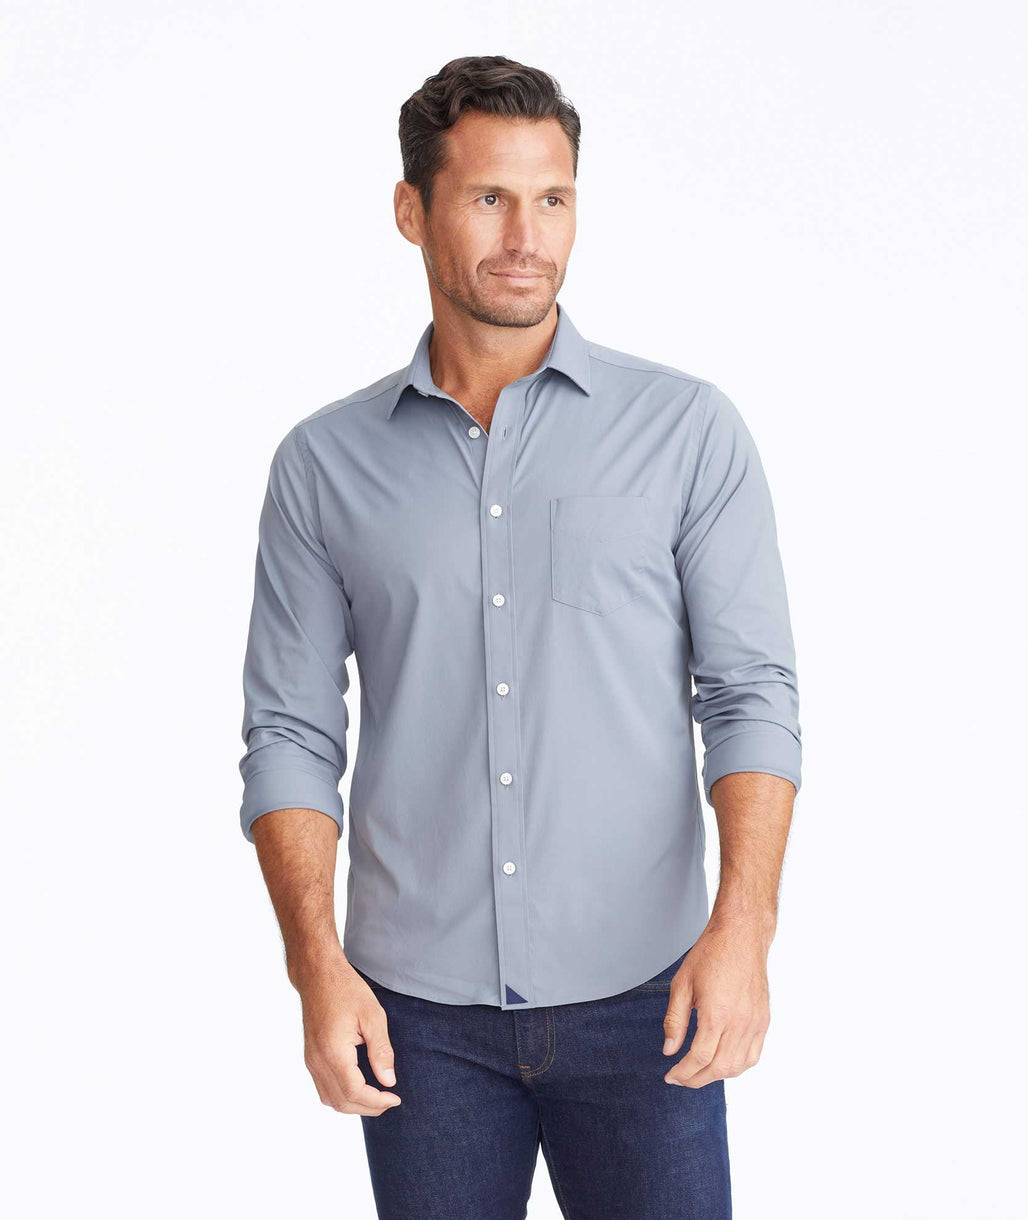 Wrinkle-Free Performance Gironde Shirt